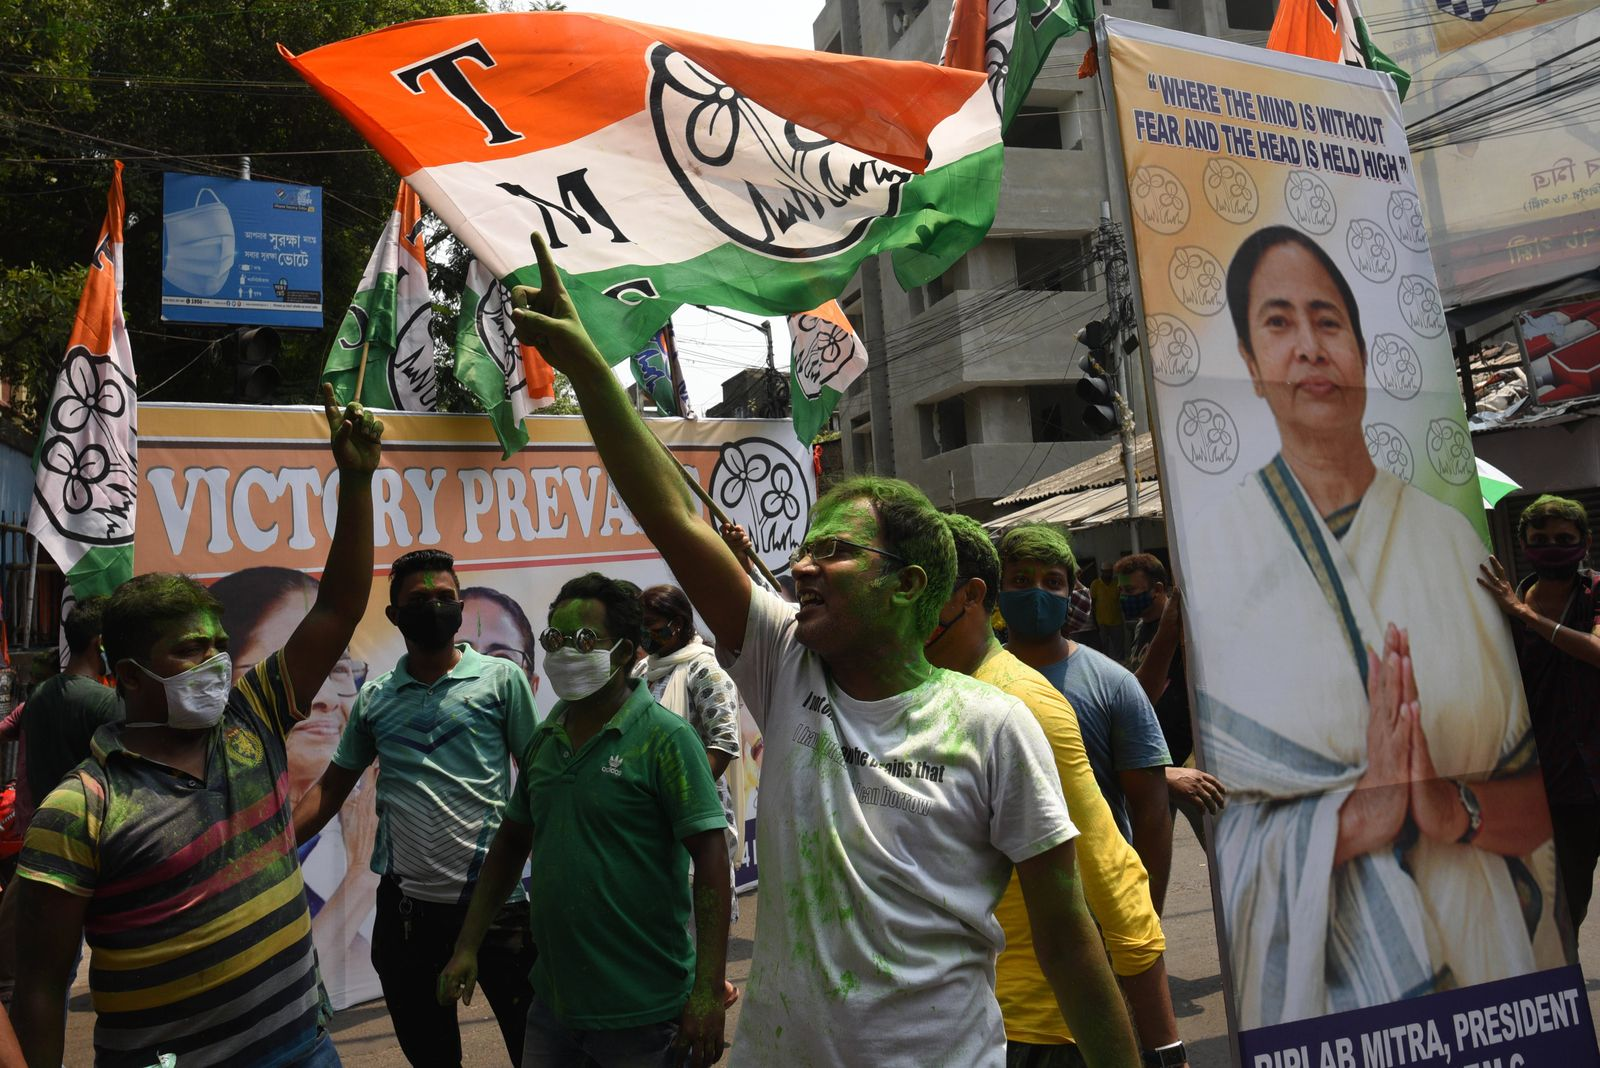 KOLKATA, INDIA - MAY 2: All India Trinamool Congress workers and supporters celebrate the victory in West Bengal Assemb